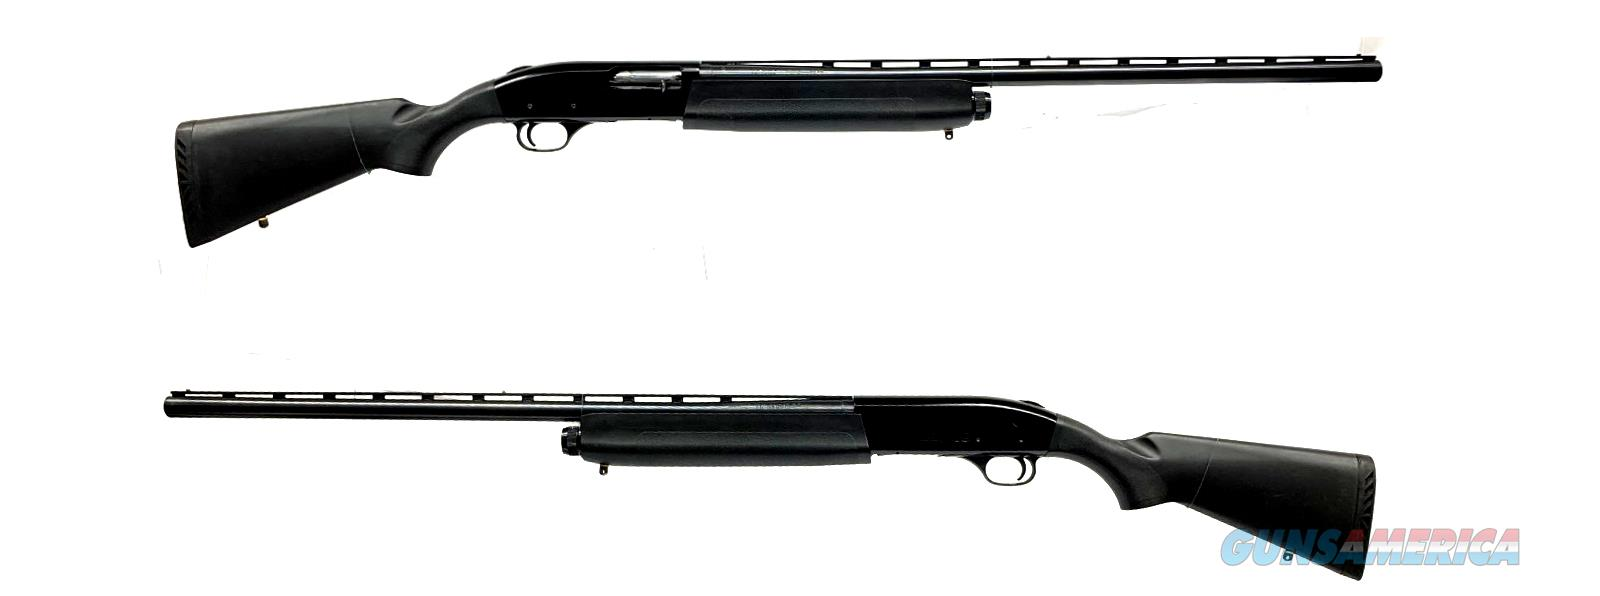 Mossberg Model 5500MK II 12GA Semi-Automatic Sh... for sale